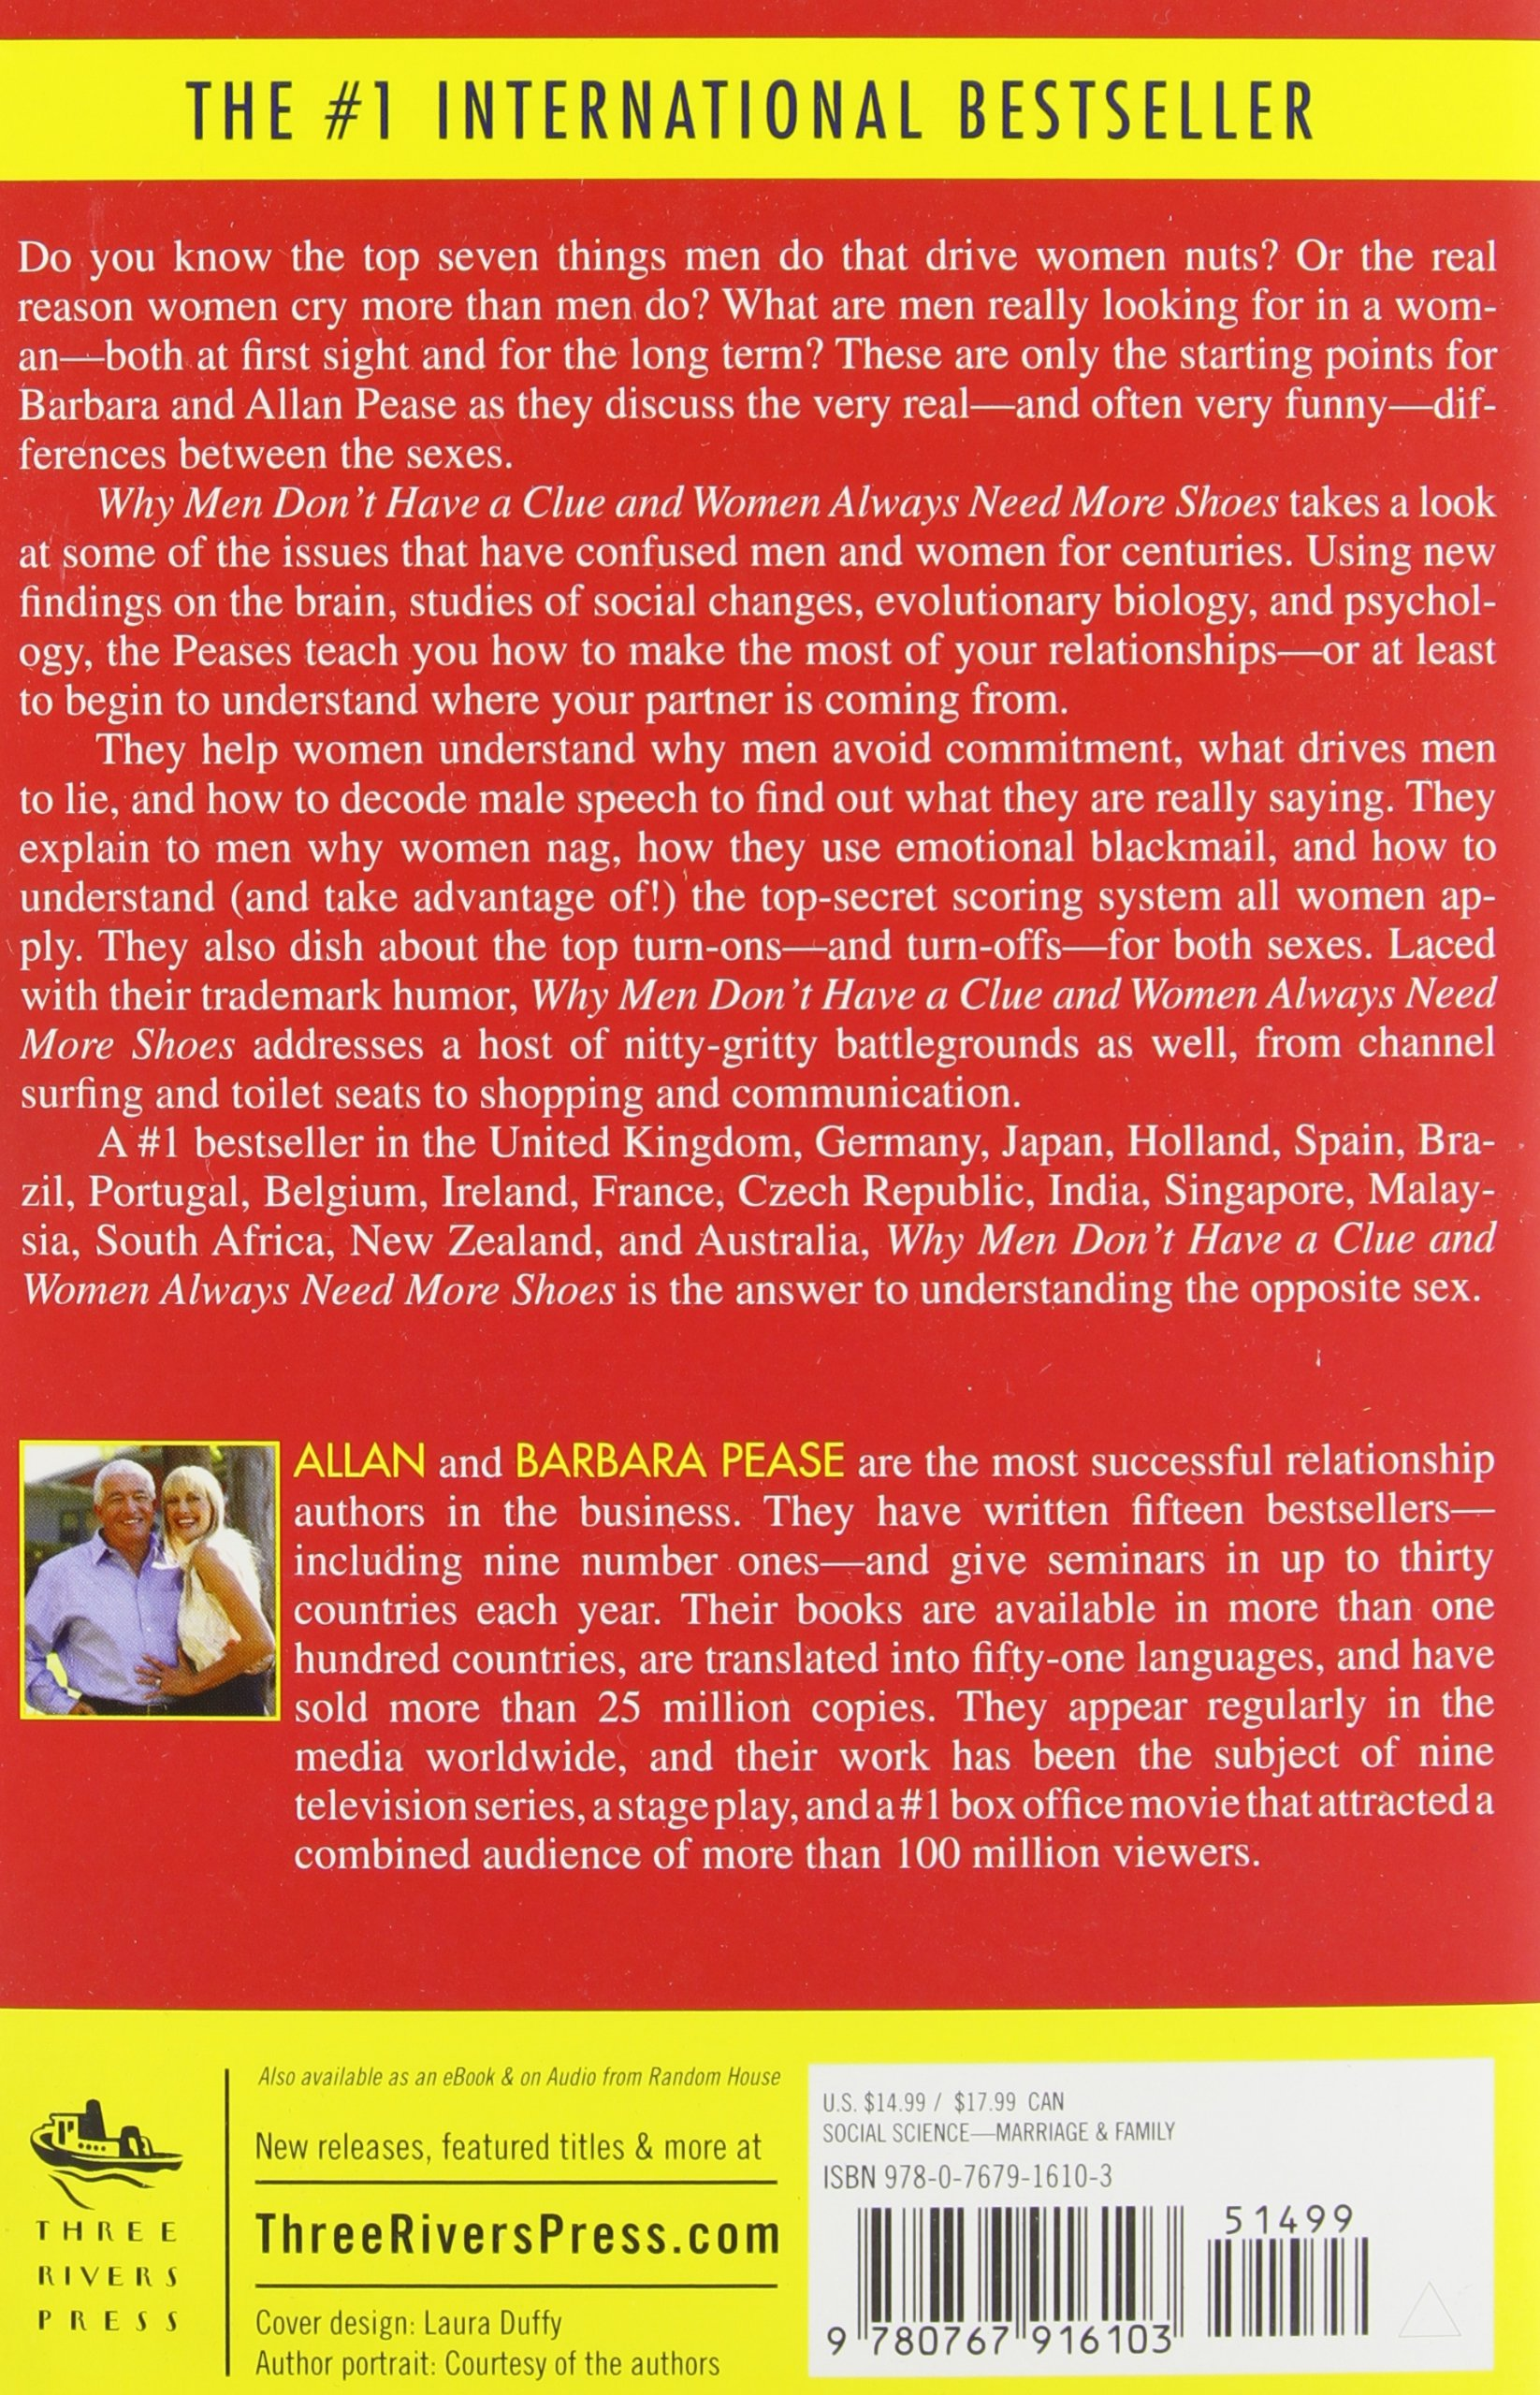 Amazon: Why Men Don't Have A Clue And Women Always Need More Shoes: The  Ultimate Guide To The Opposite Sex (9780767916103): Barbara Pease, Allan  Pease: